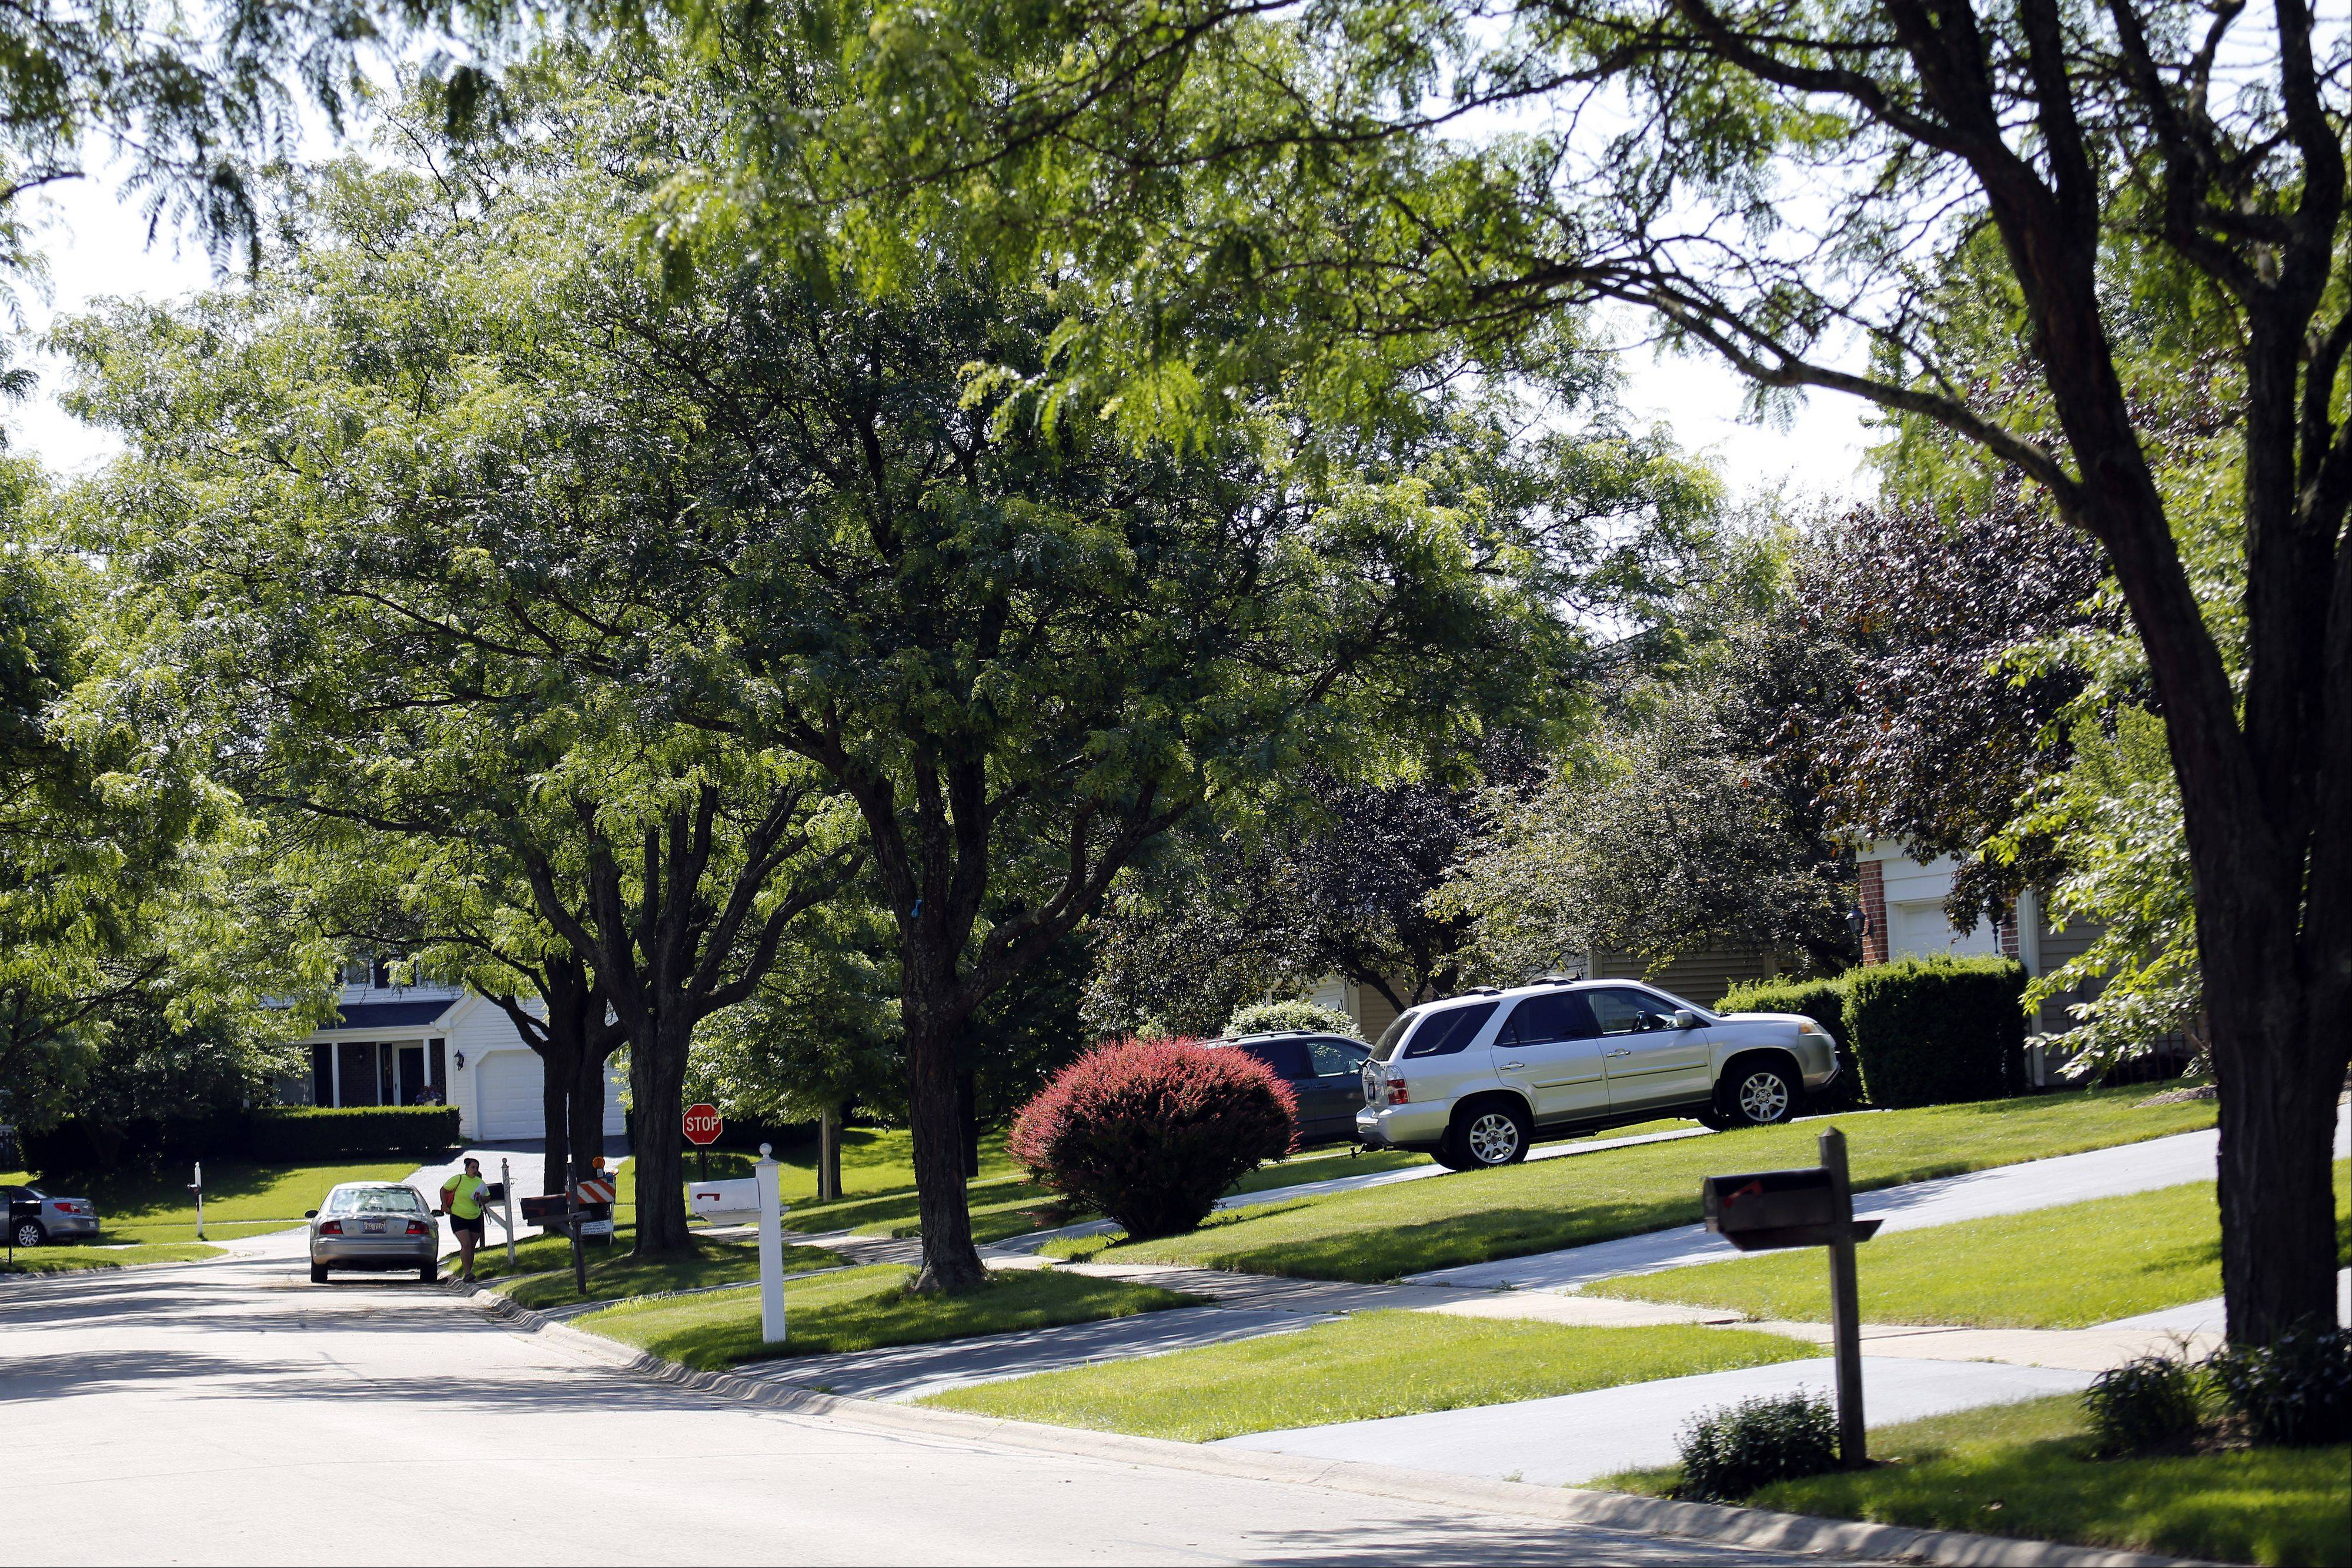 This view along Thackeray Lane shows the tree-lined streets found in Fox River Grove's Foxmoor neighborhood.